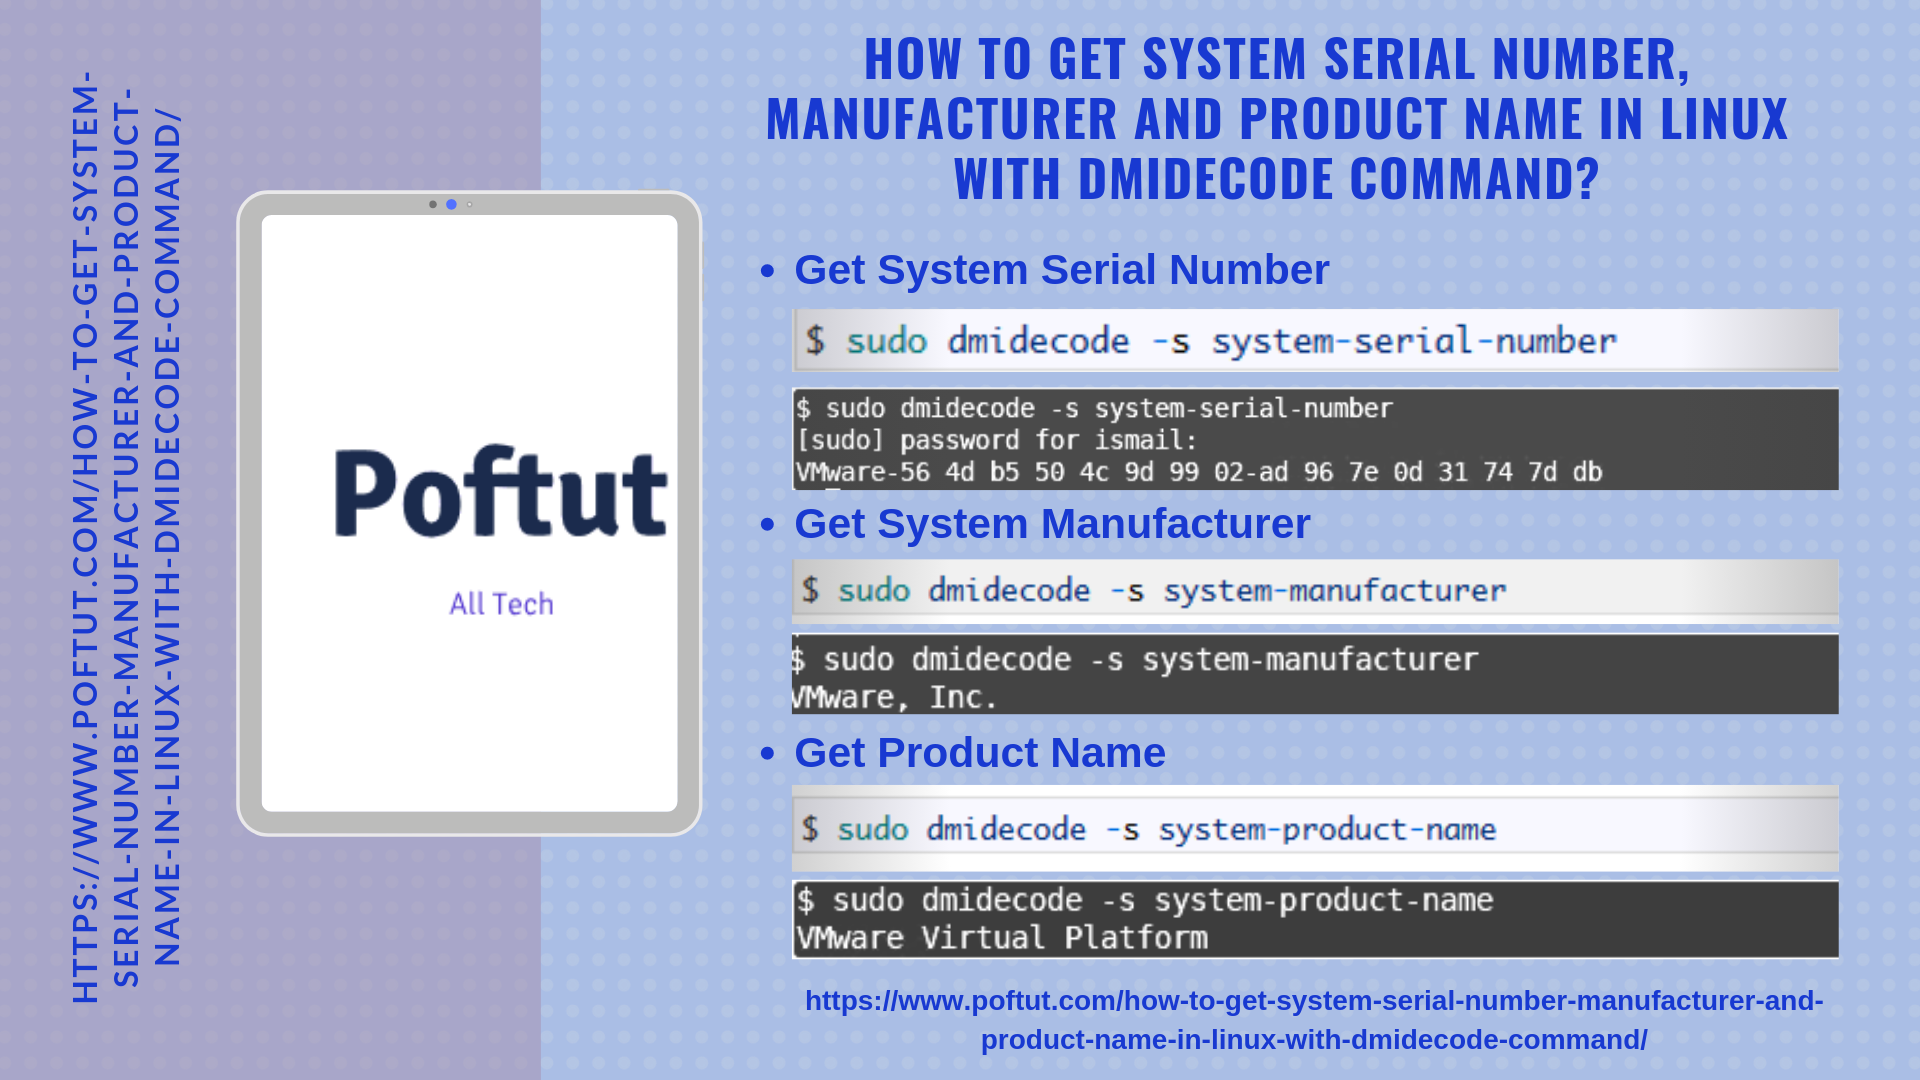 How To Get System Serial Number, Manufacturer and Product Name In Linux with dmidecode Command? Infografic